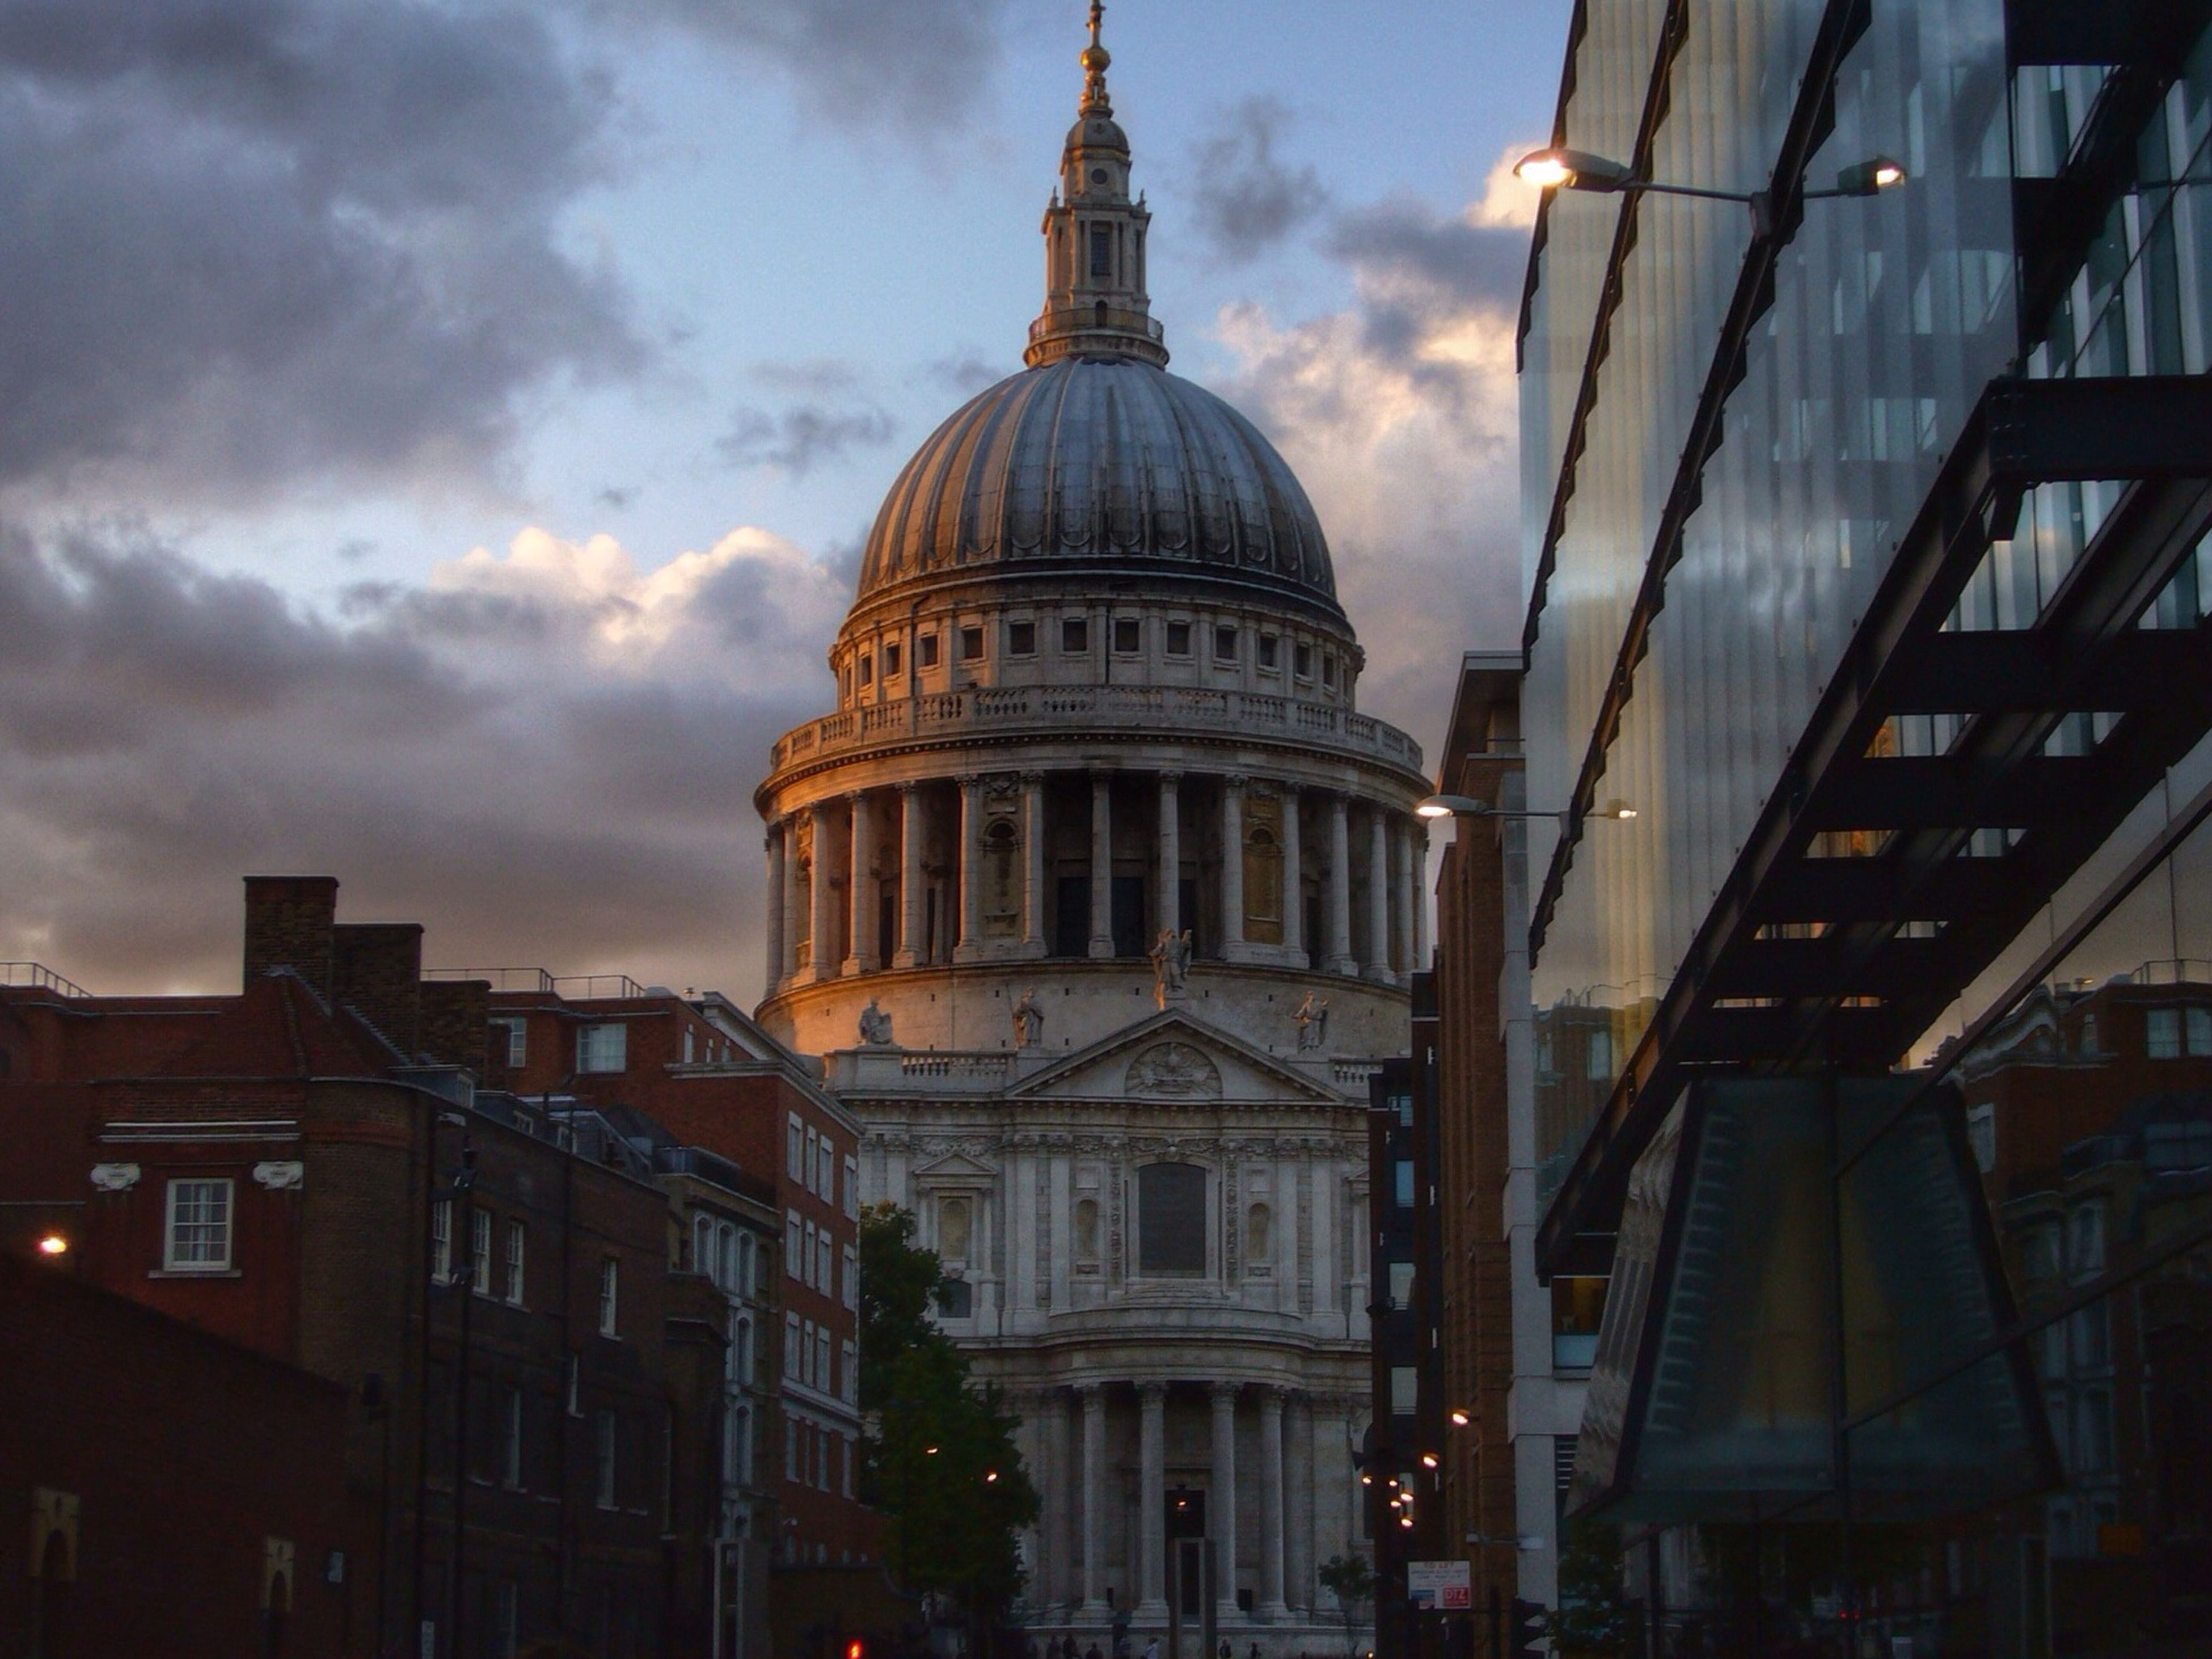 architecture, built structure, building exterior, sky, cloud - sky, low angle view, cloudy, city, cloud, modern, tower, tall - high, building, dusk, outdoors, travel destinations, no people, capital cities, sunset, famous place